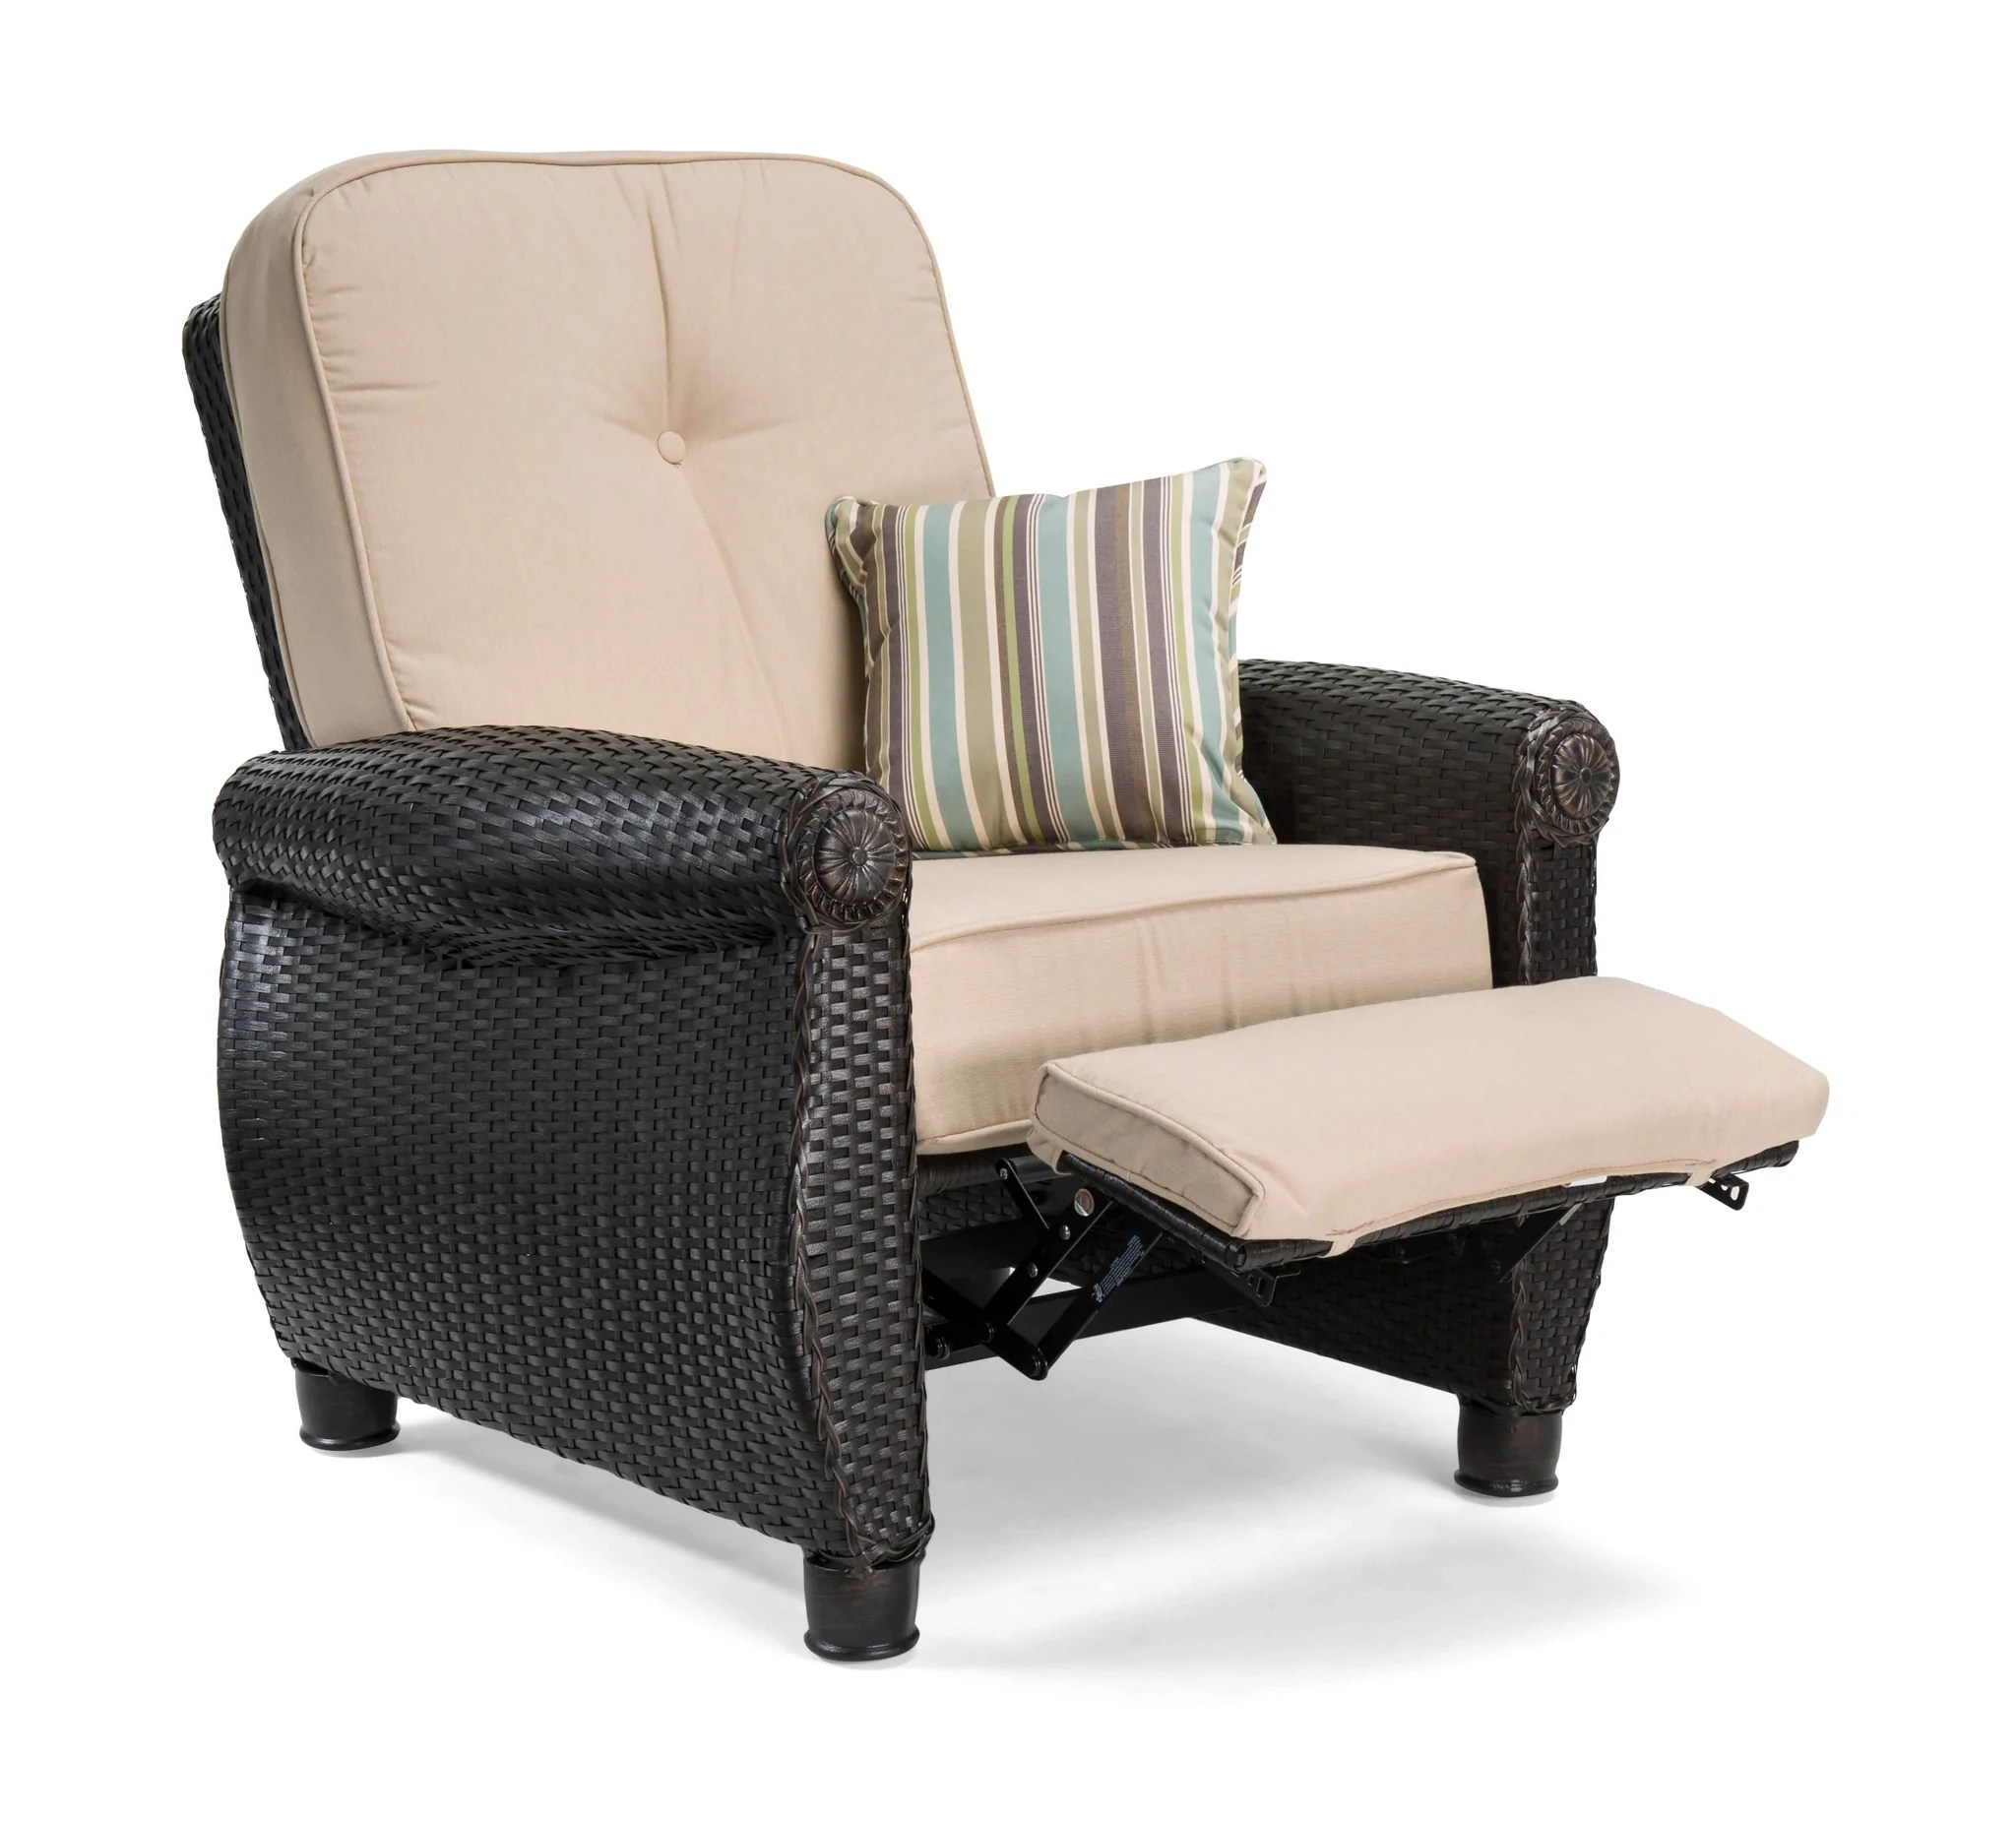 reclining patio chairs and table white spandex chair covers breckenridge tan 3 pc furniture set two recliners